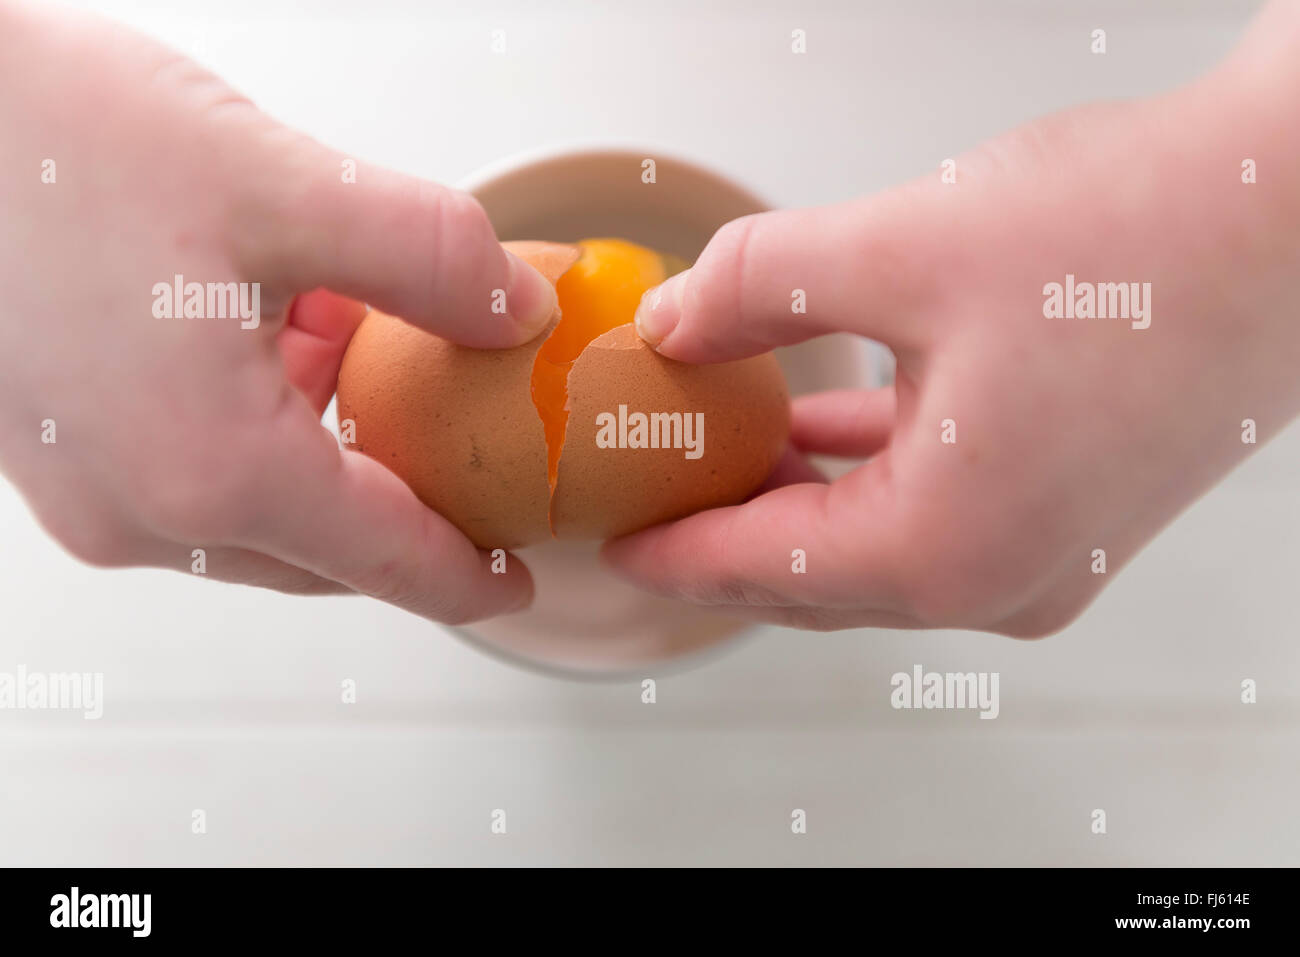 A cook cracking a free range egg in to a bowl. - Stock Image